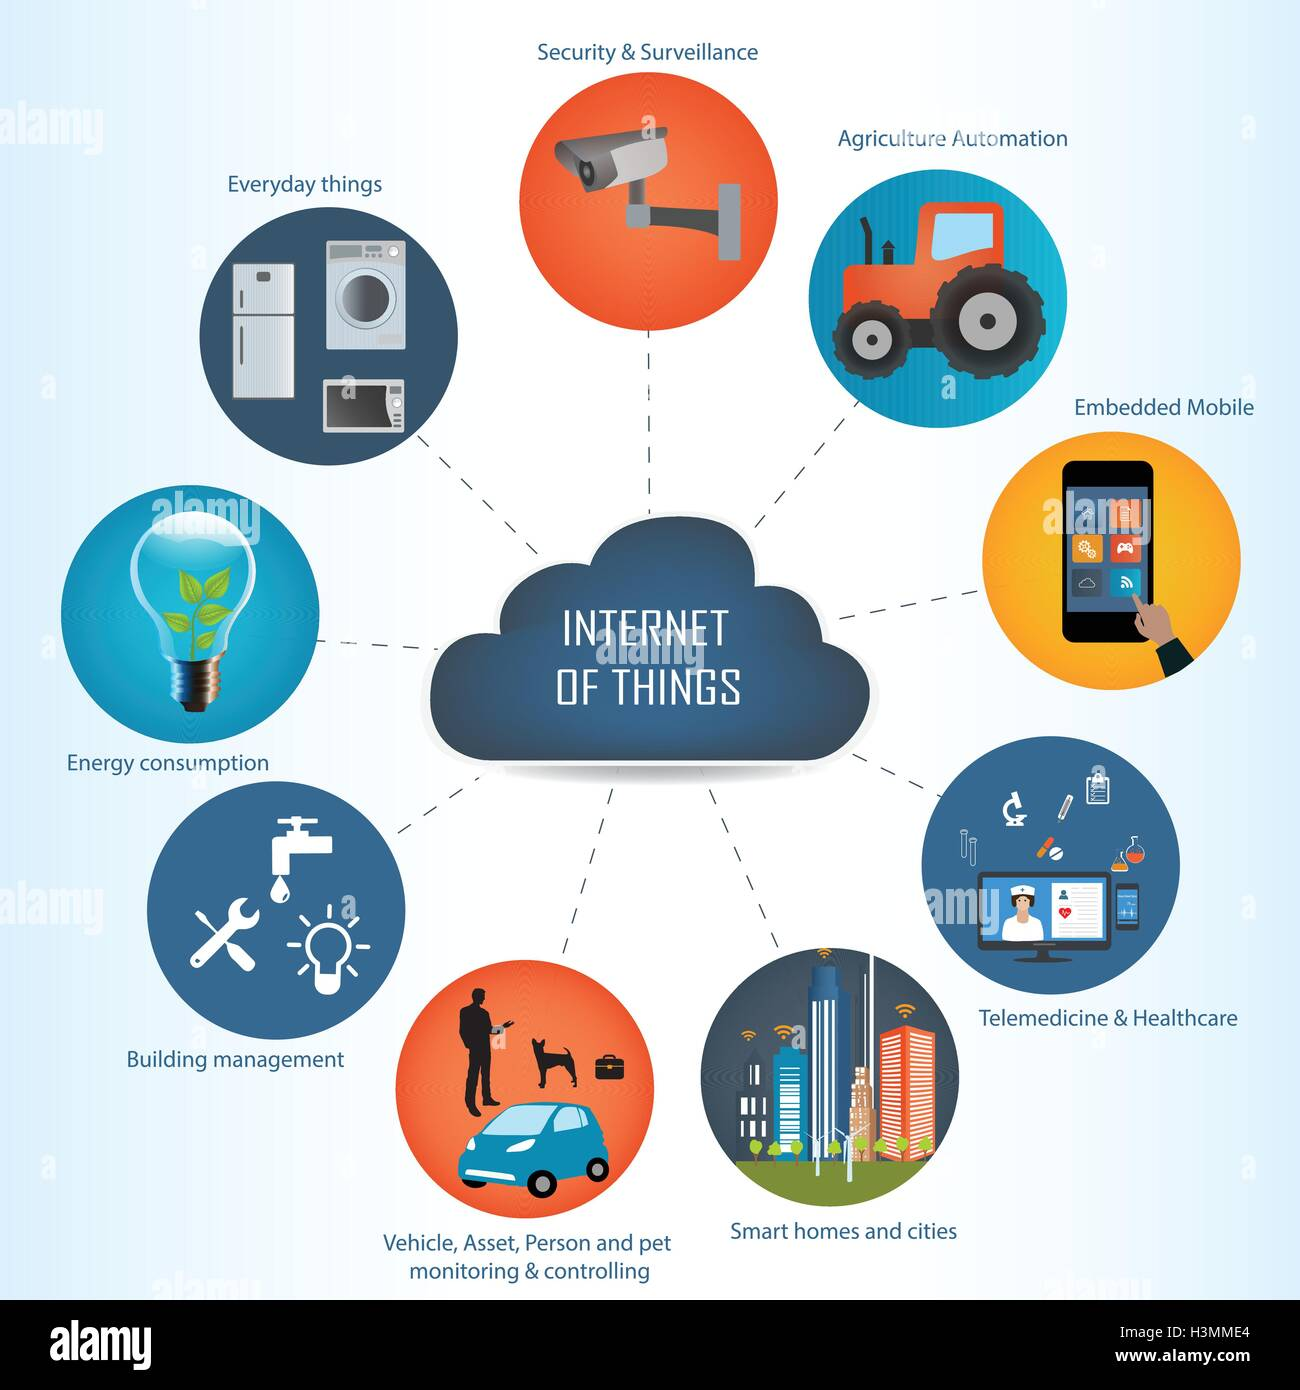 Internet of things concept and Cloud computing technology Internet networking concept. Internet of things cloud - Stock Image